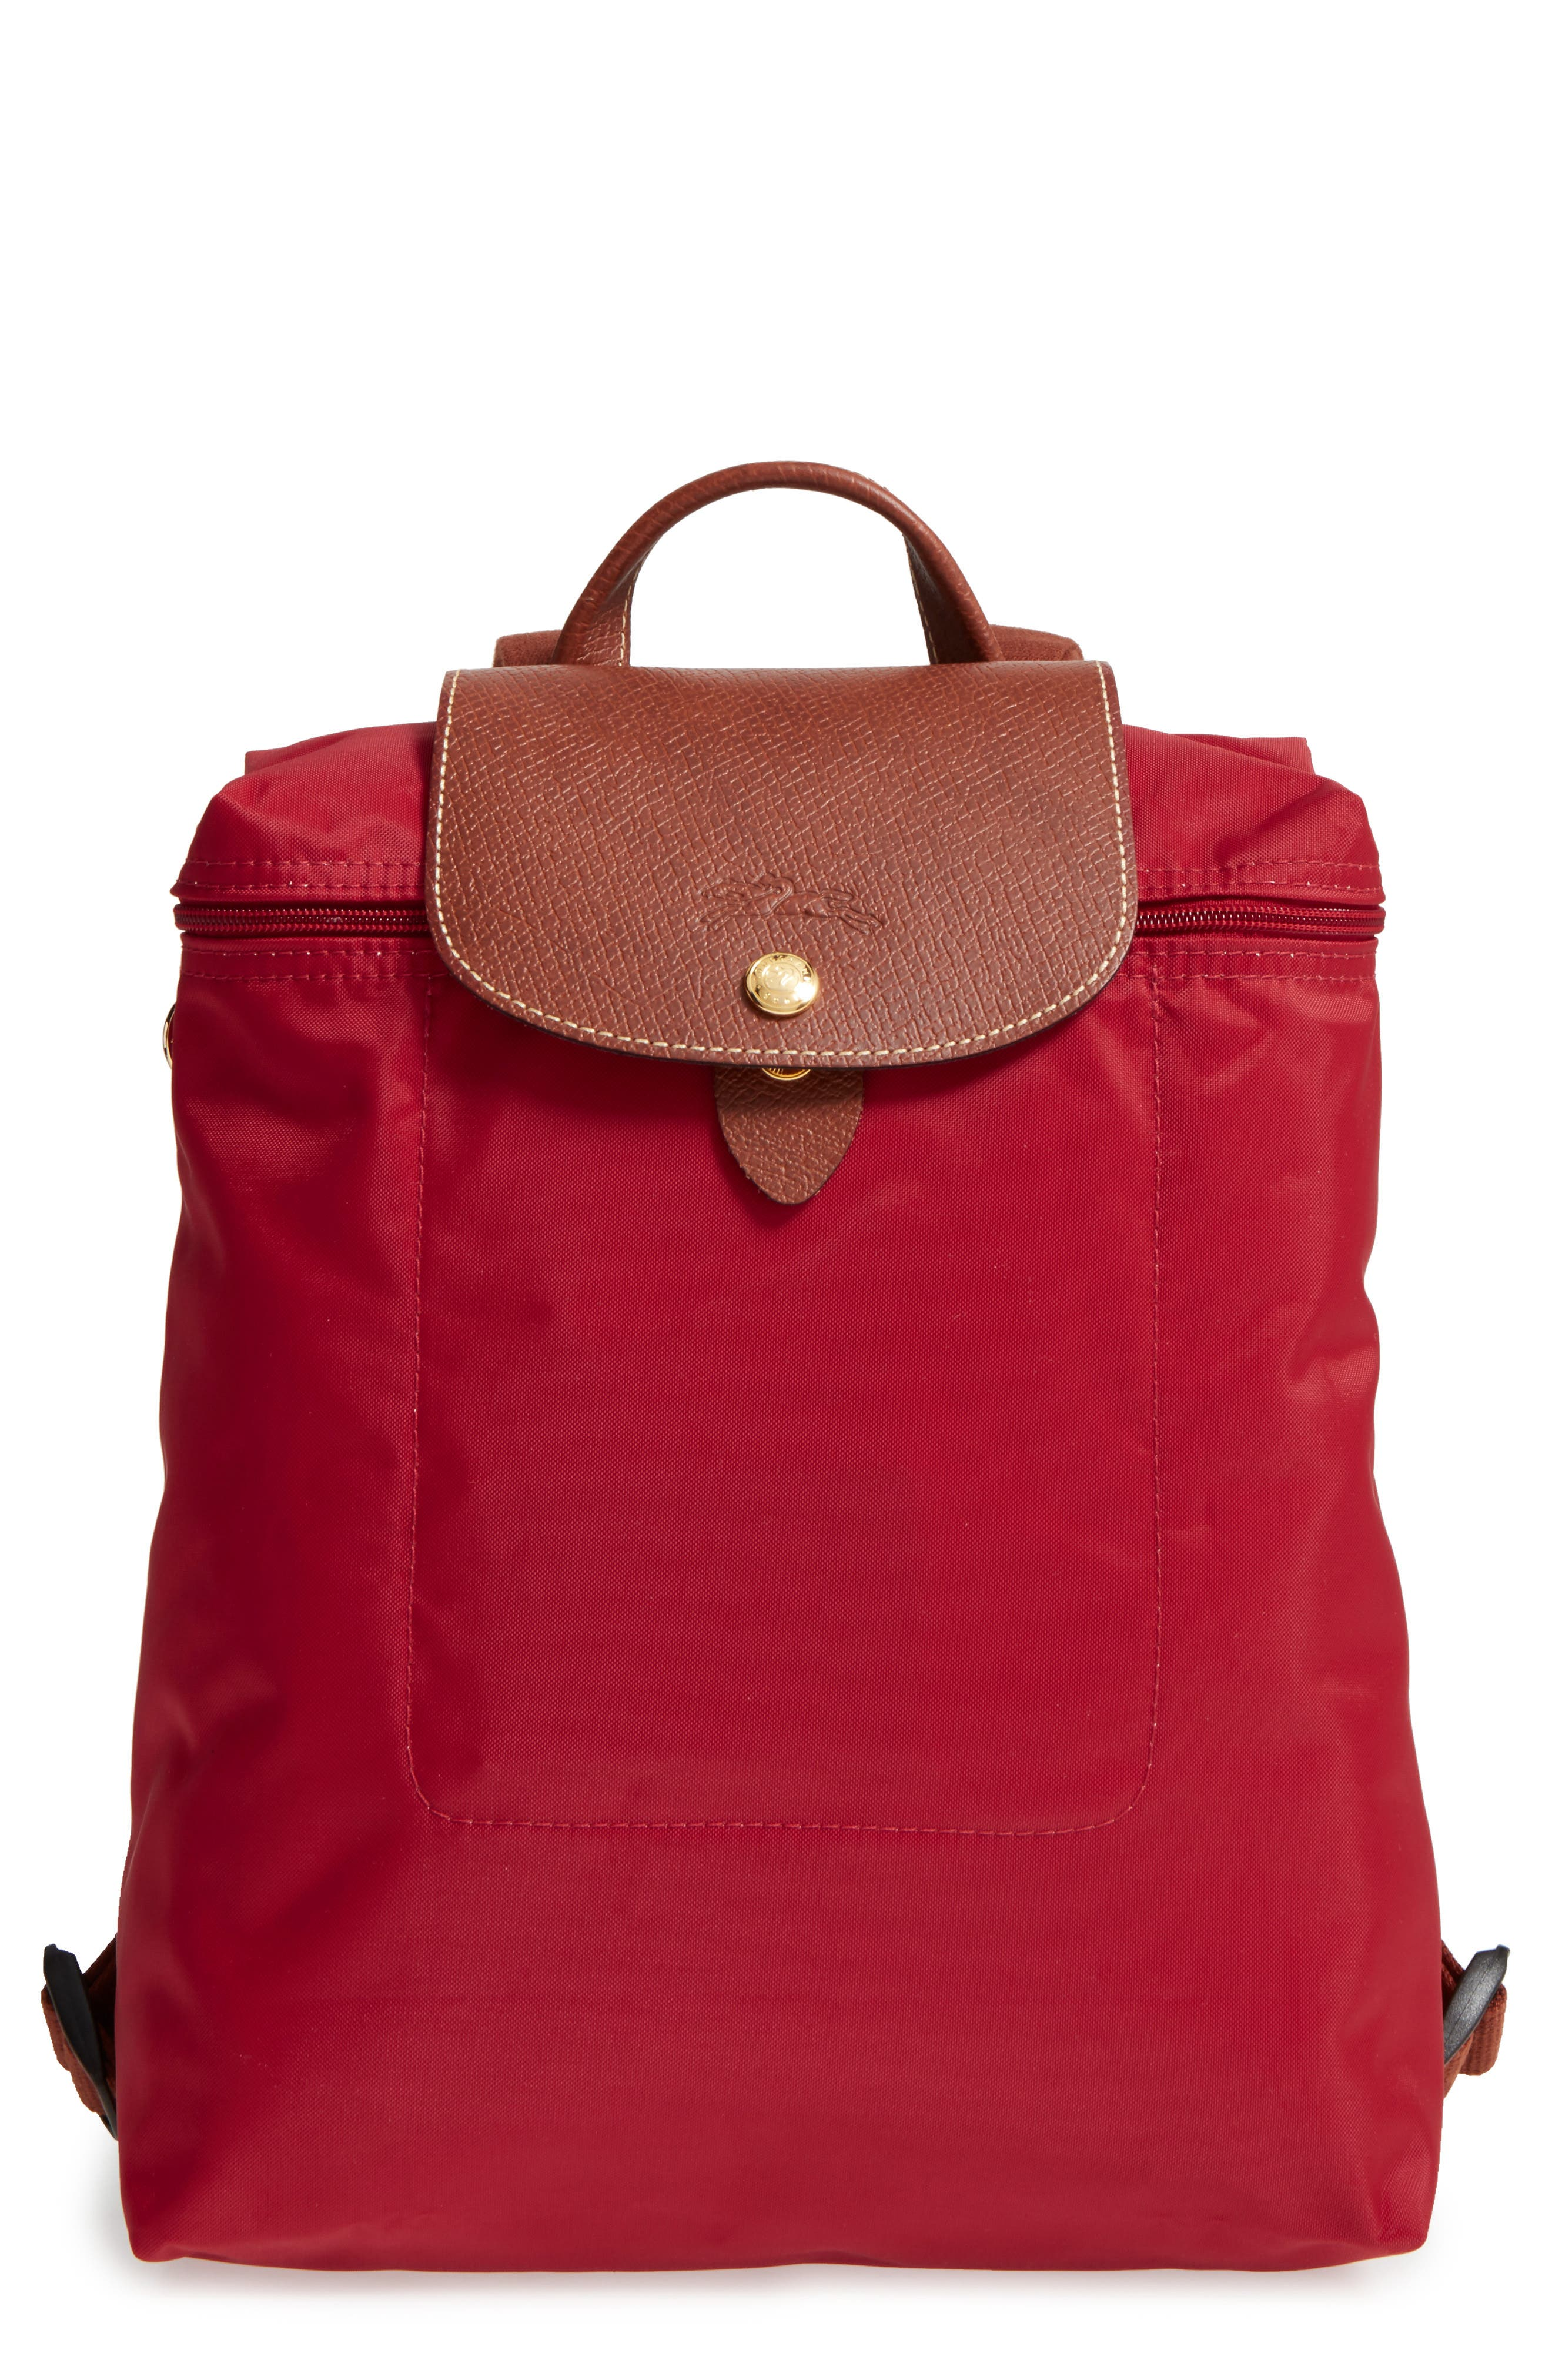 LONGCHAMP 'Le Pliage' Backpack - Red in Deep Red